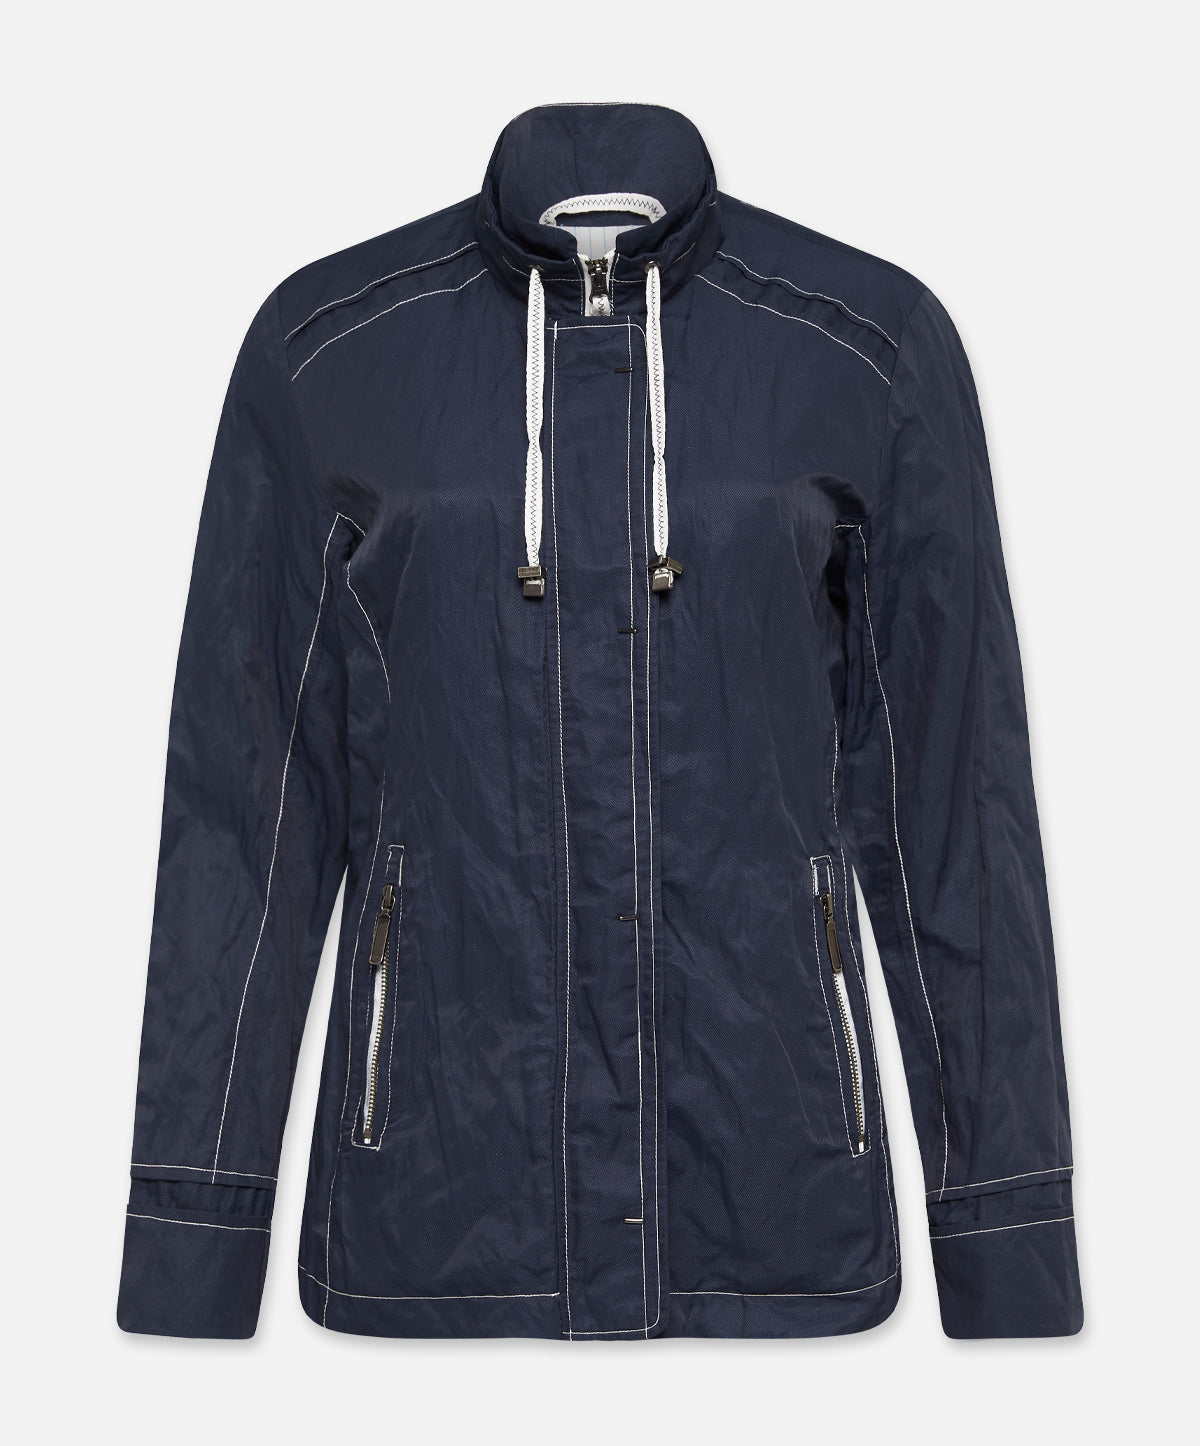 Summit Jacket